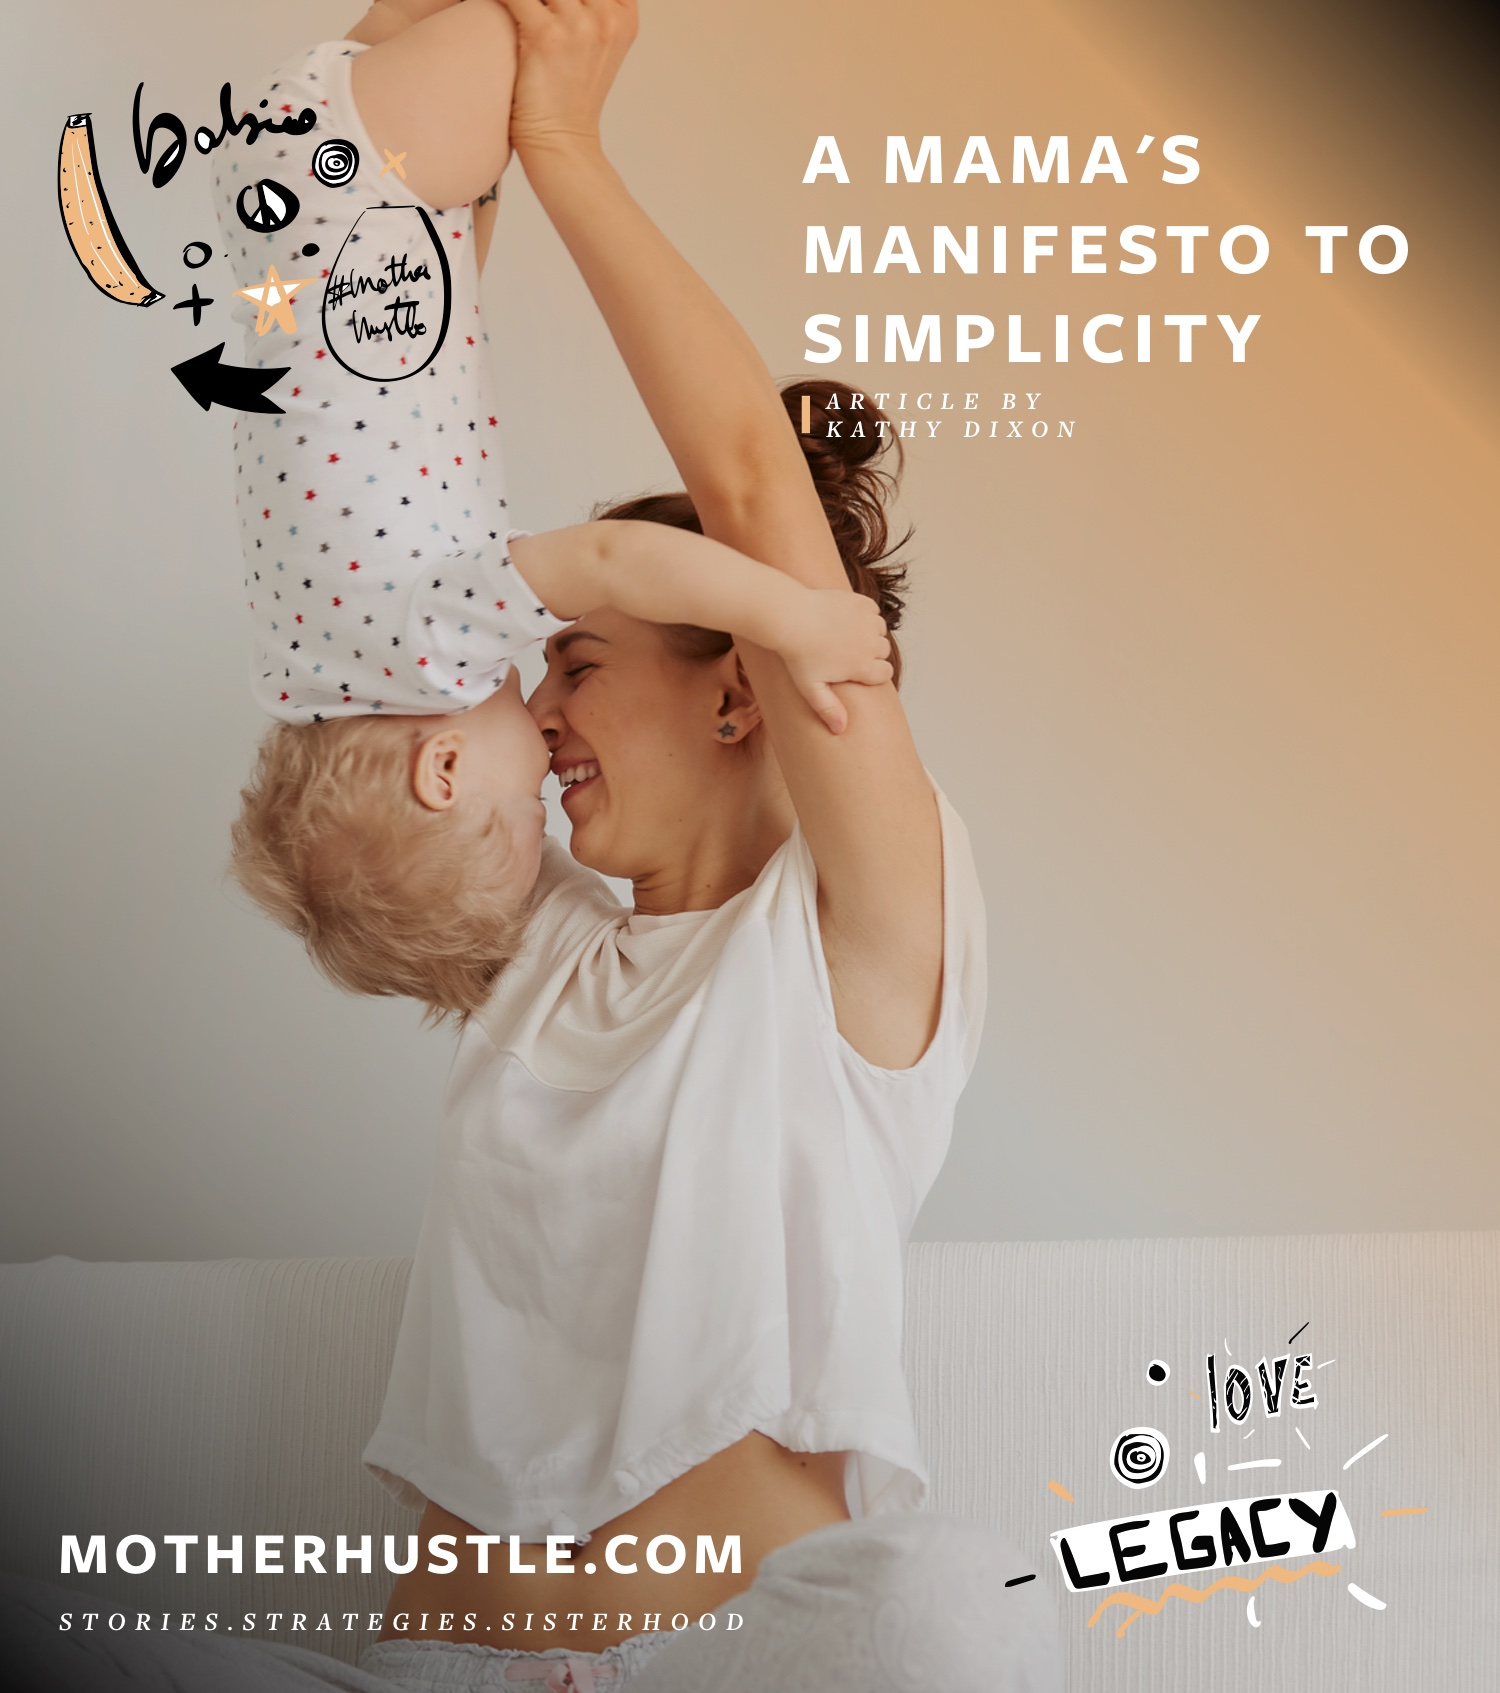 A Mama's Manifesto to Simplicity - by Kathy Dixon MotherHustle